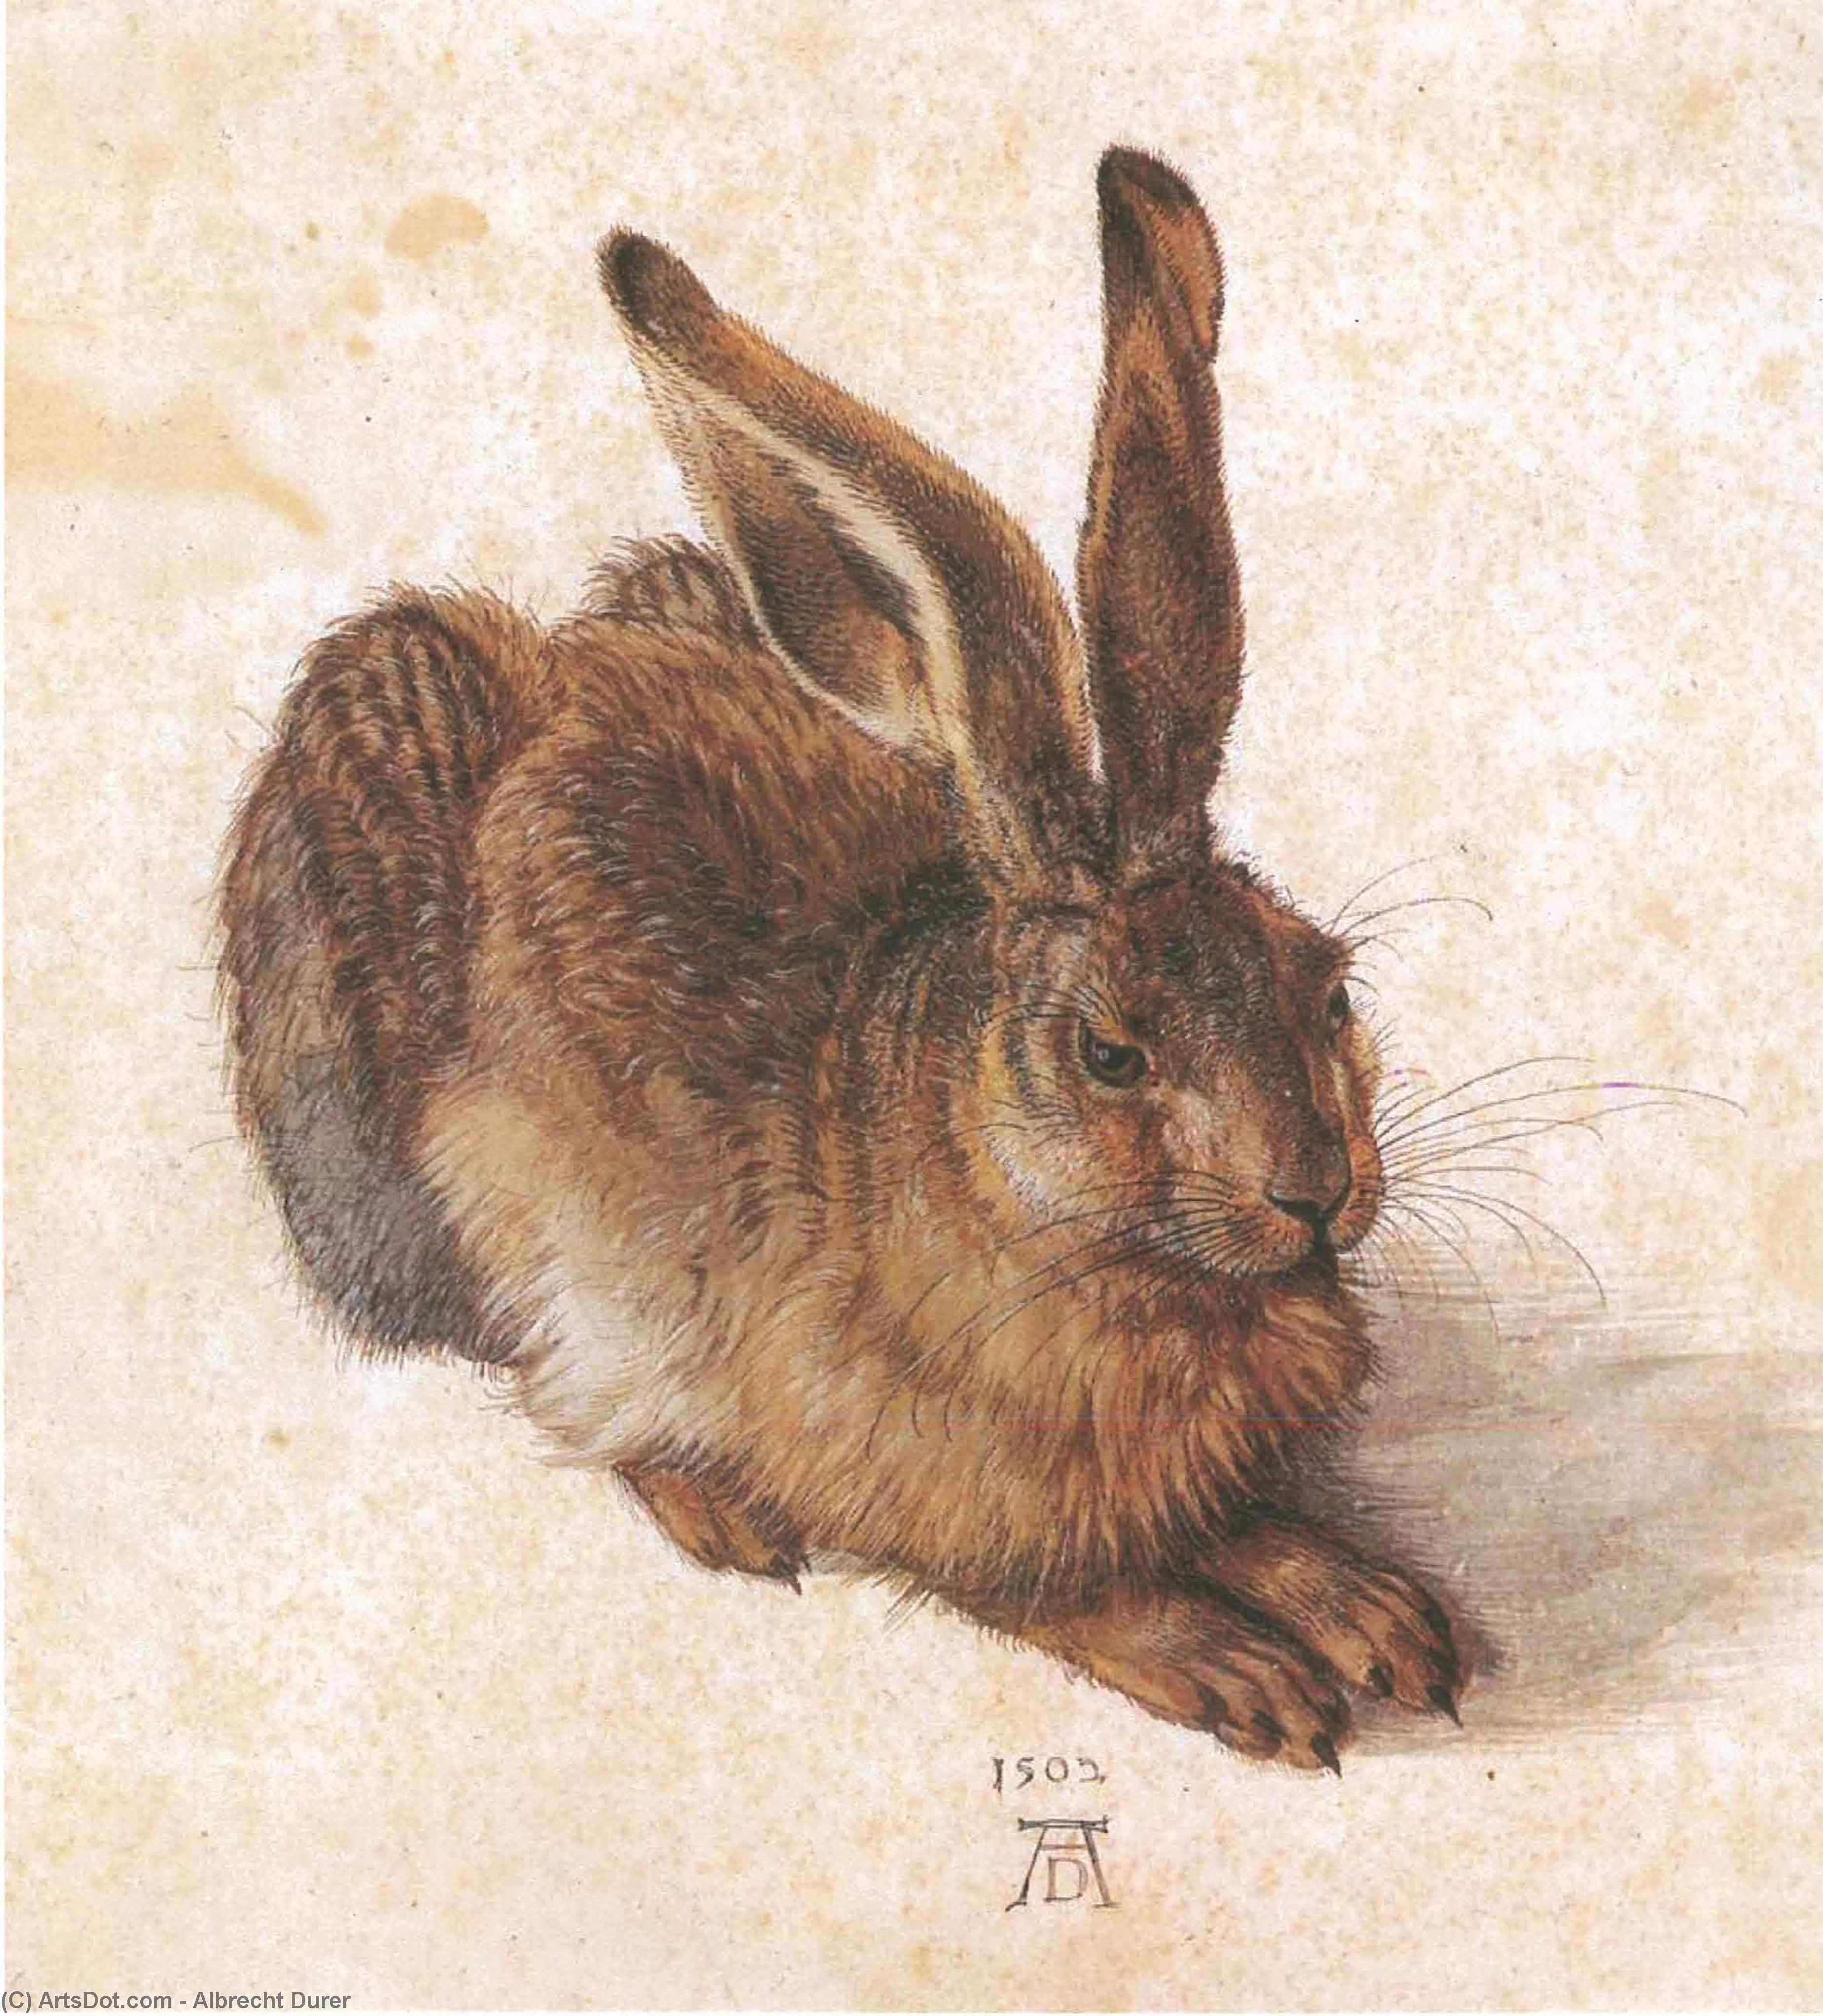 Wikioo.org - The Encyclopedia of Fine Arts - Painting, Artwork by Albrecht Durer - Young Hare